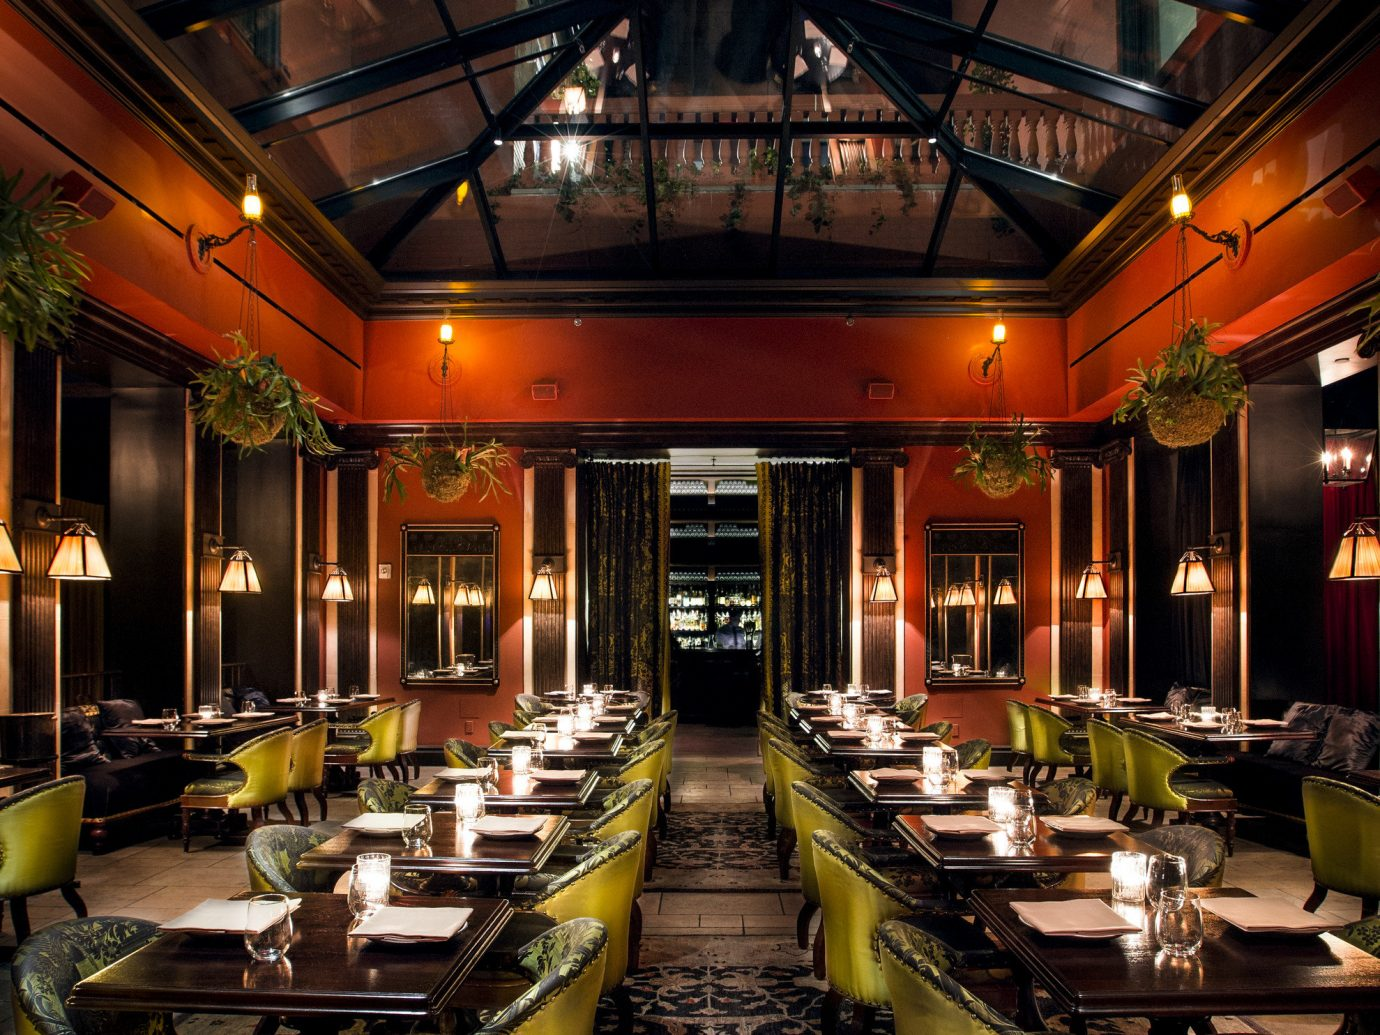 Arts + Culture Food + Drink Romance indoor building night meal restaurant interior design Lobby